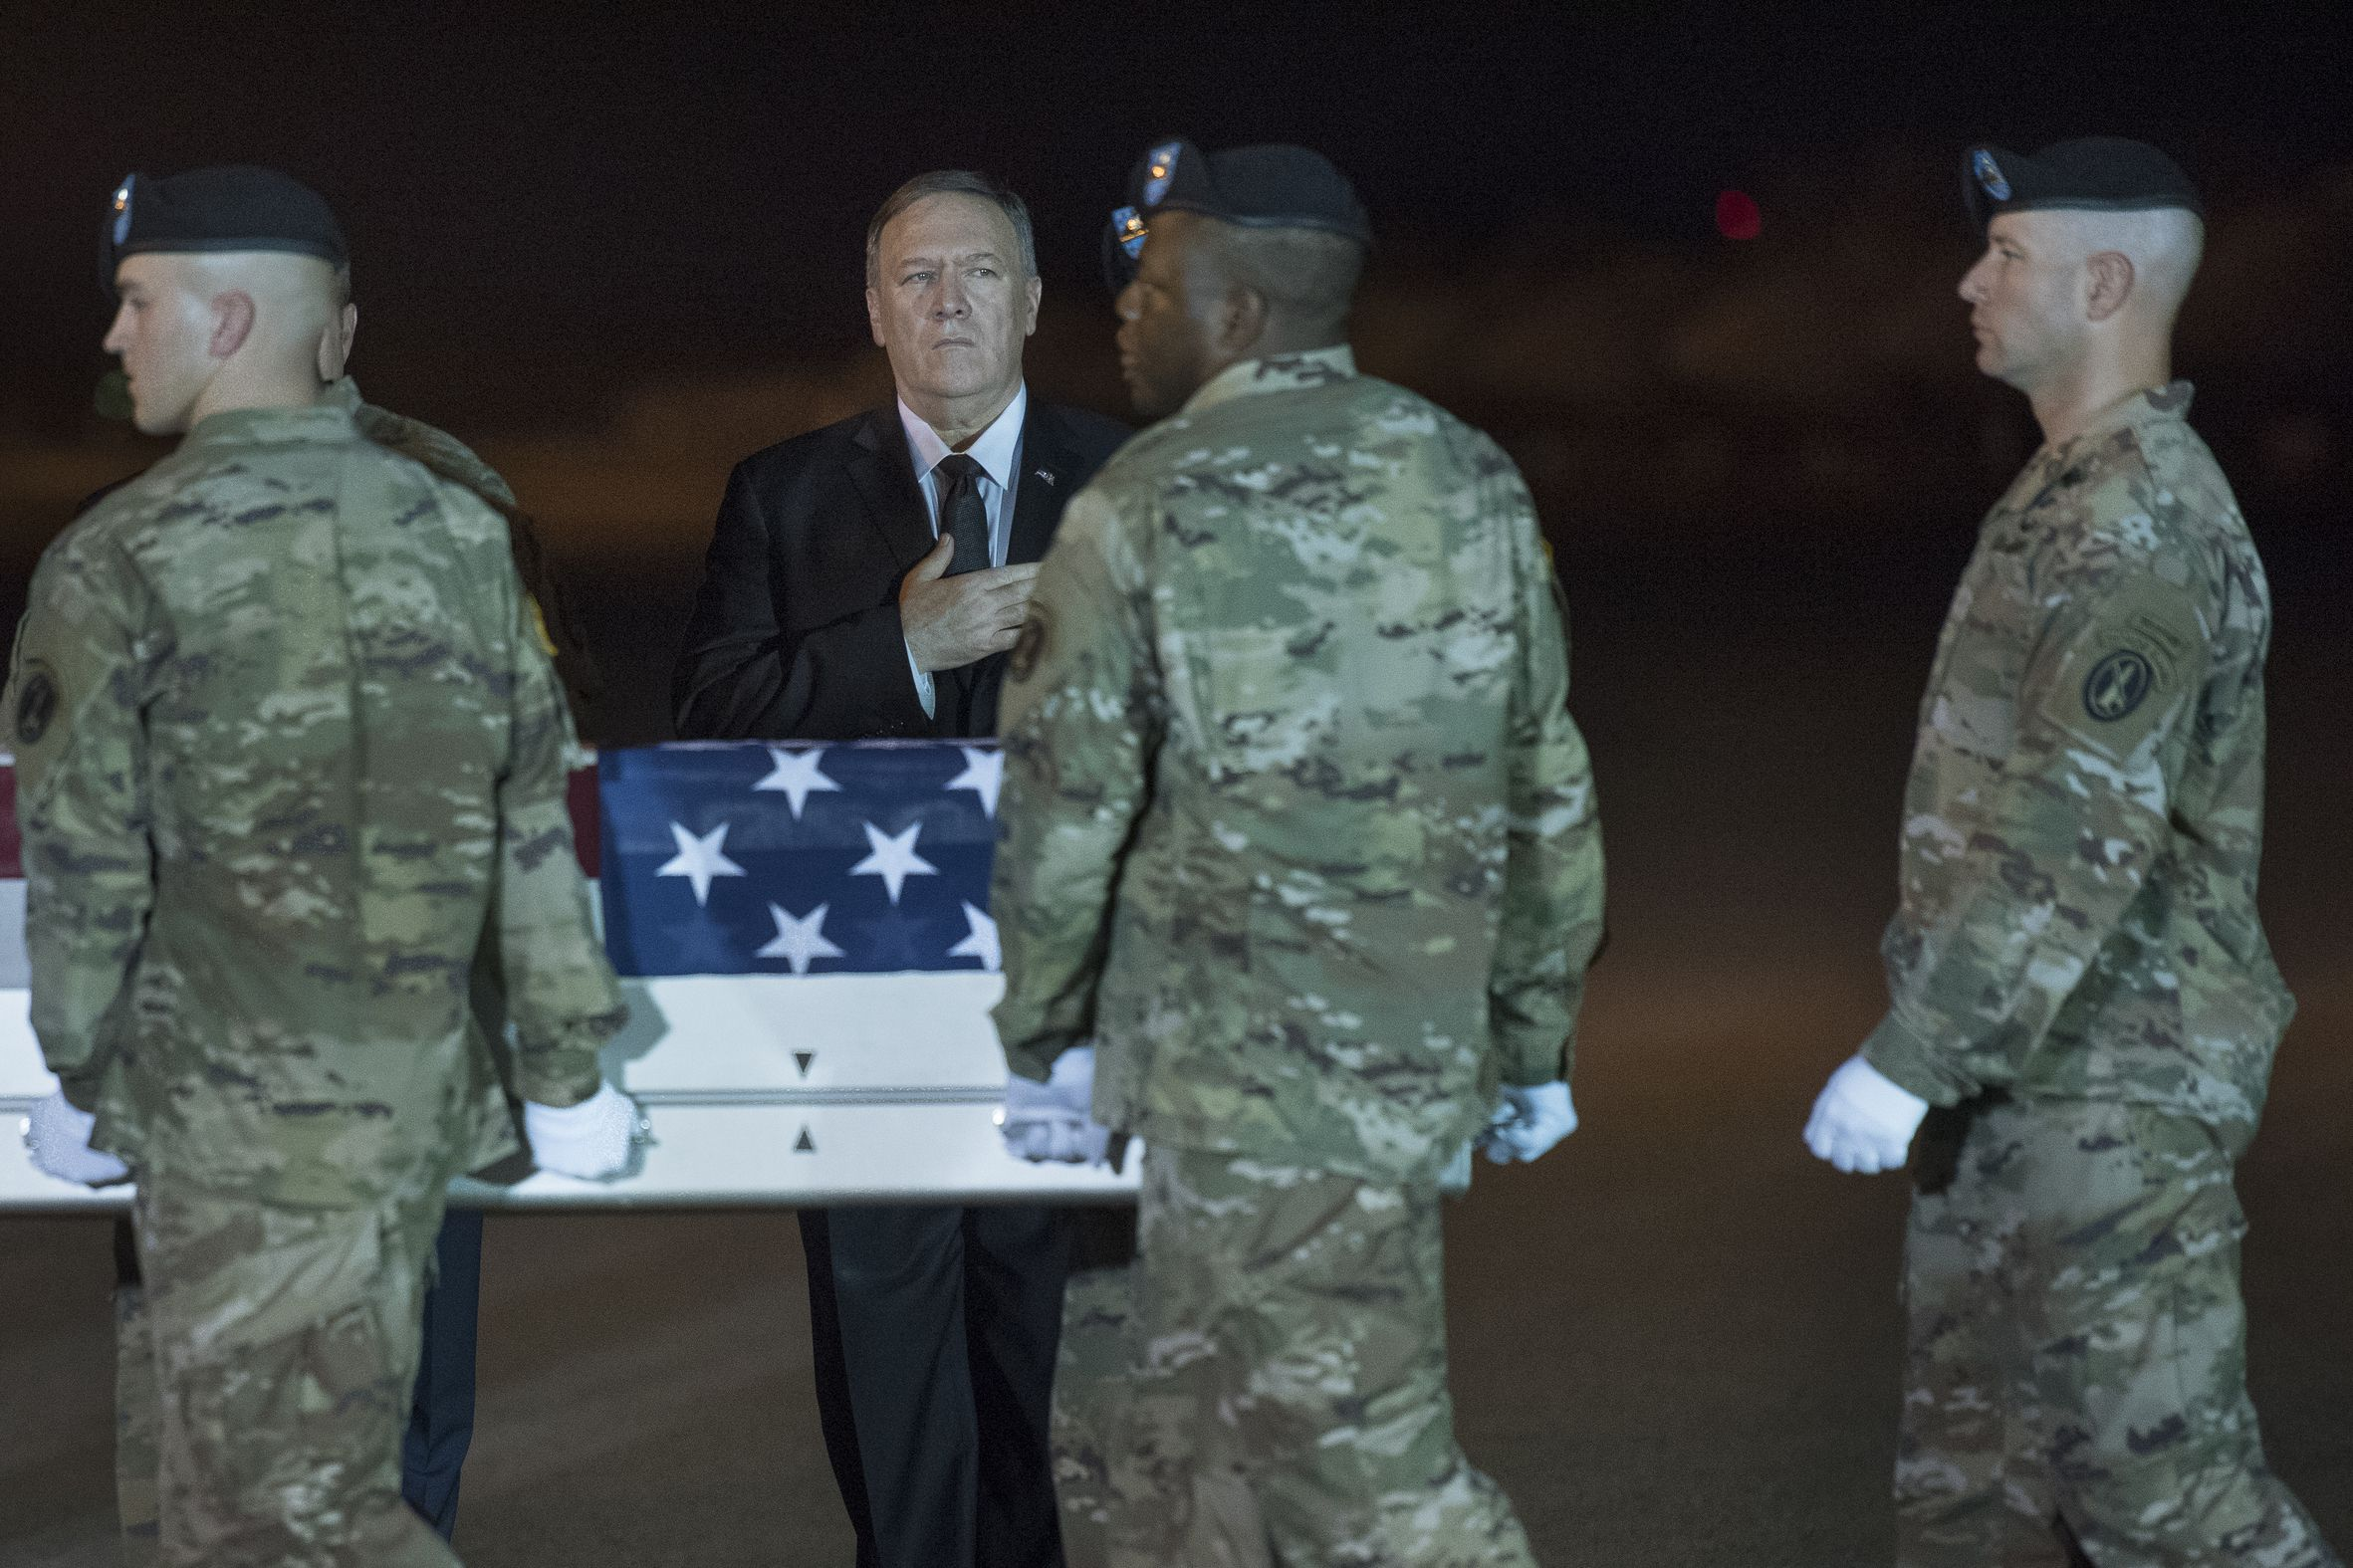 Secretary of State Mike Pompeo salutes as the remains of Sgt. 1st Class Elis Ortiz, 34, of Puerto Rico arrive Saturday at Dover Air Force Base after he was killed by a Taliban car bomb in Afghanistan. Photo: Cliff Owen/AP